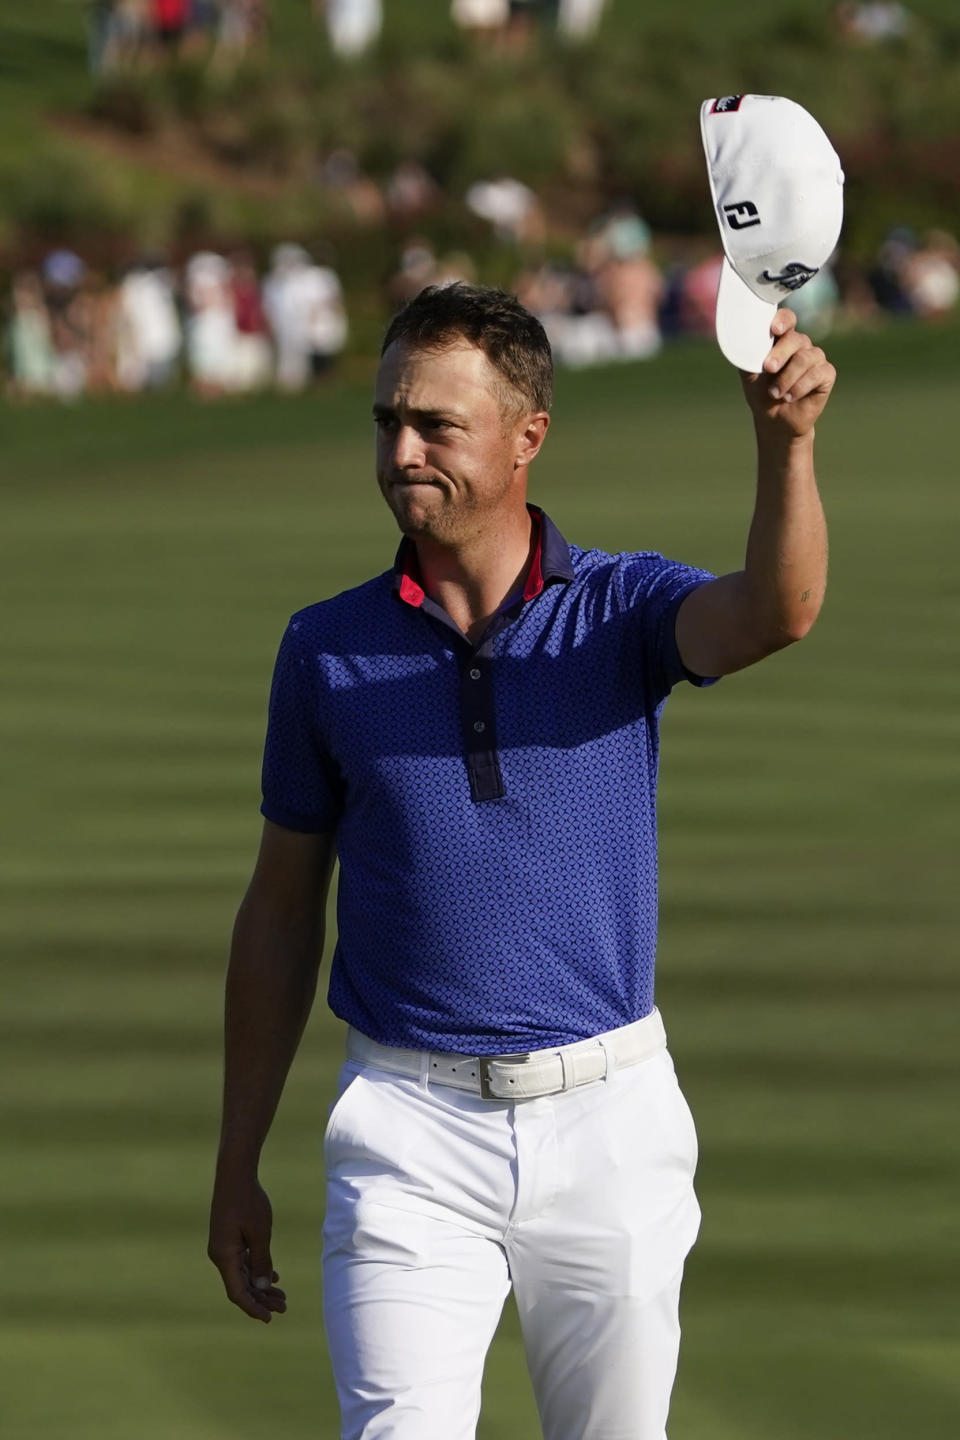 Justin Thomas waves on the 18th green after the final round of The Players Championship golf tournament Sunday, March 14, 2021, in Ponte Vedra Beach, Fla. (AP Photo/John Raoux)